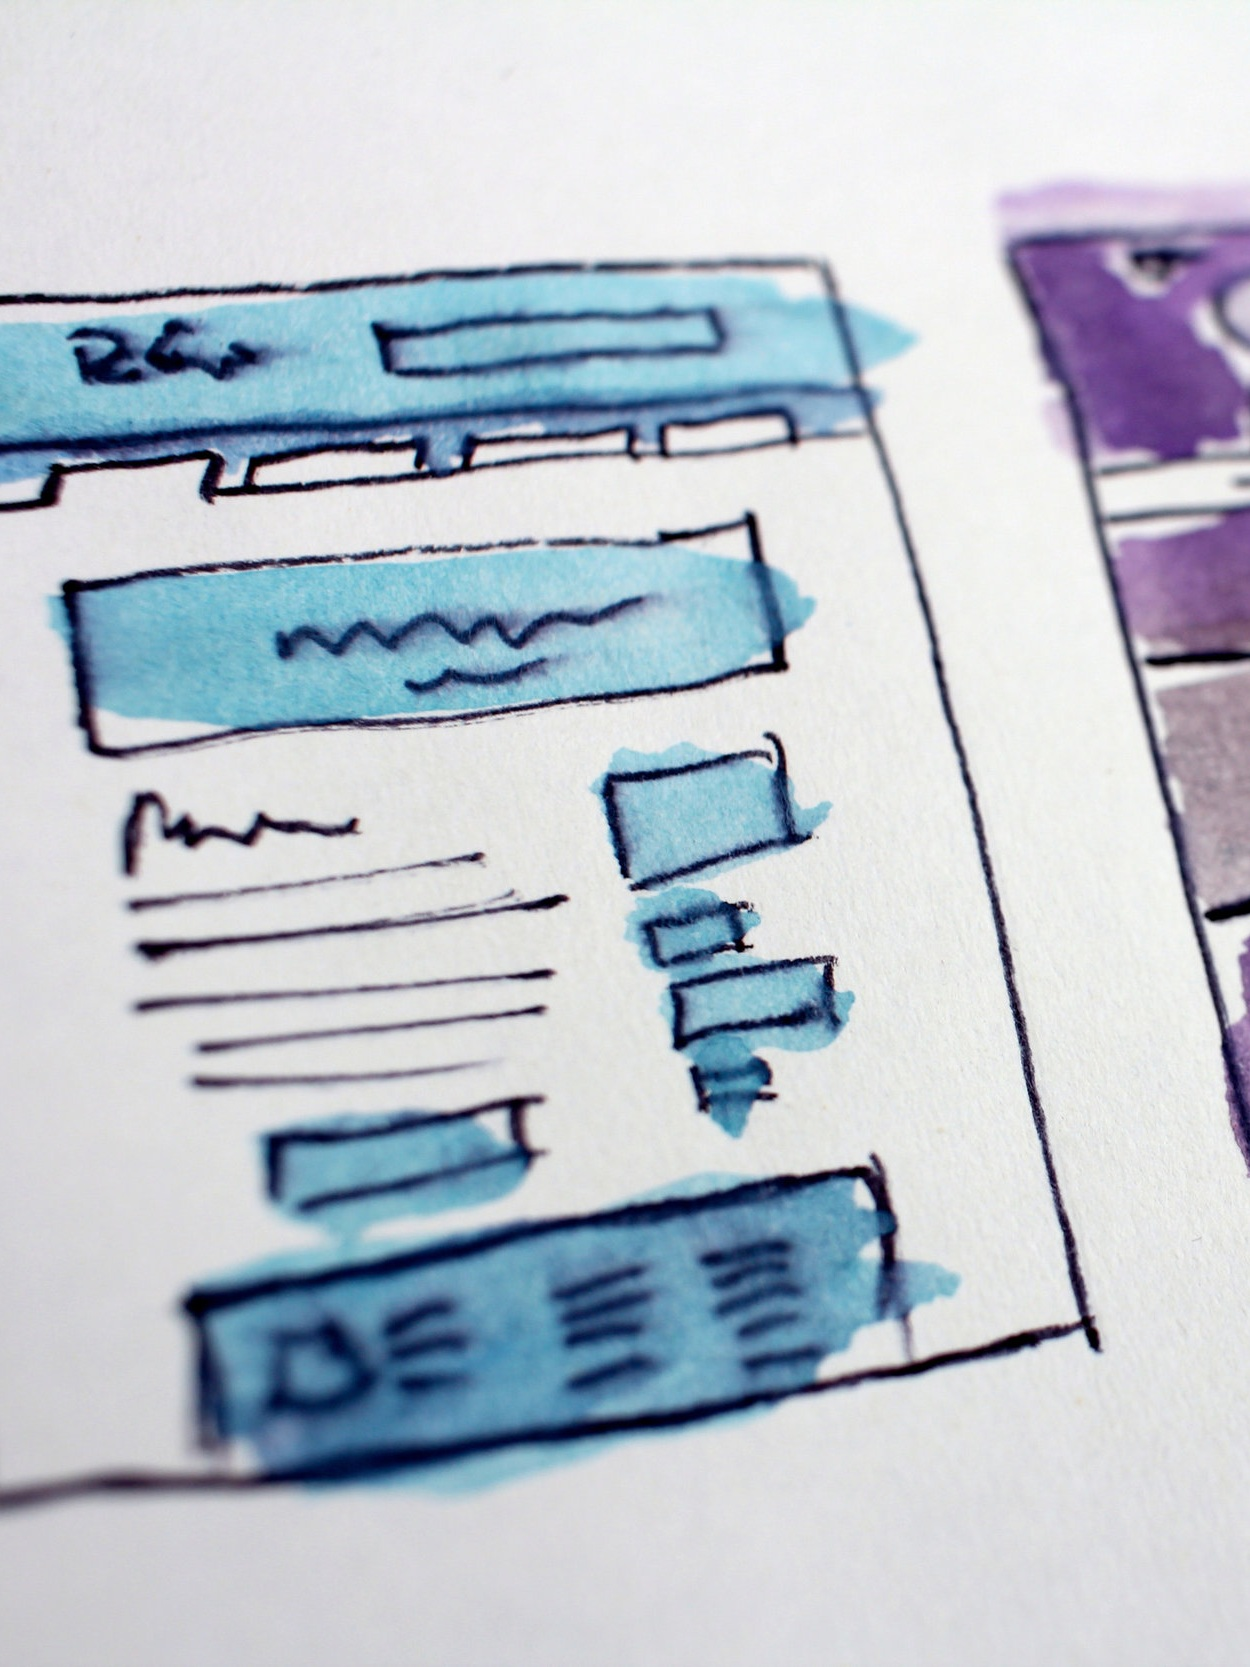 PARTS TO CONSIDER - There are many factors that an SEO copywriter considers, which I've covered thoroughly in my search engine copywriting article here, but to summarise, they involve careful planning or placement of:∙Headlines and cross heads (sub-headlines)∙Key-phrases∙Relevant, high-quality content∙Hyperlinks and anchor text∙Bullet lists (where necessary)∙Relevant images∙Rich snippets∙Meta data∙Citations